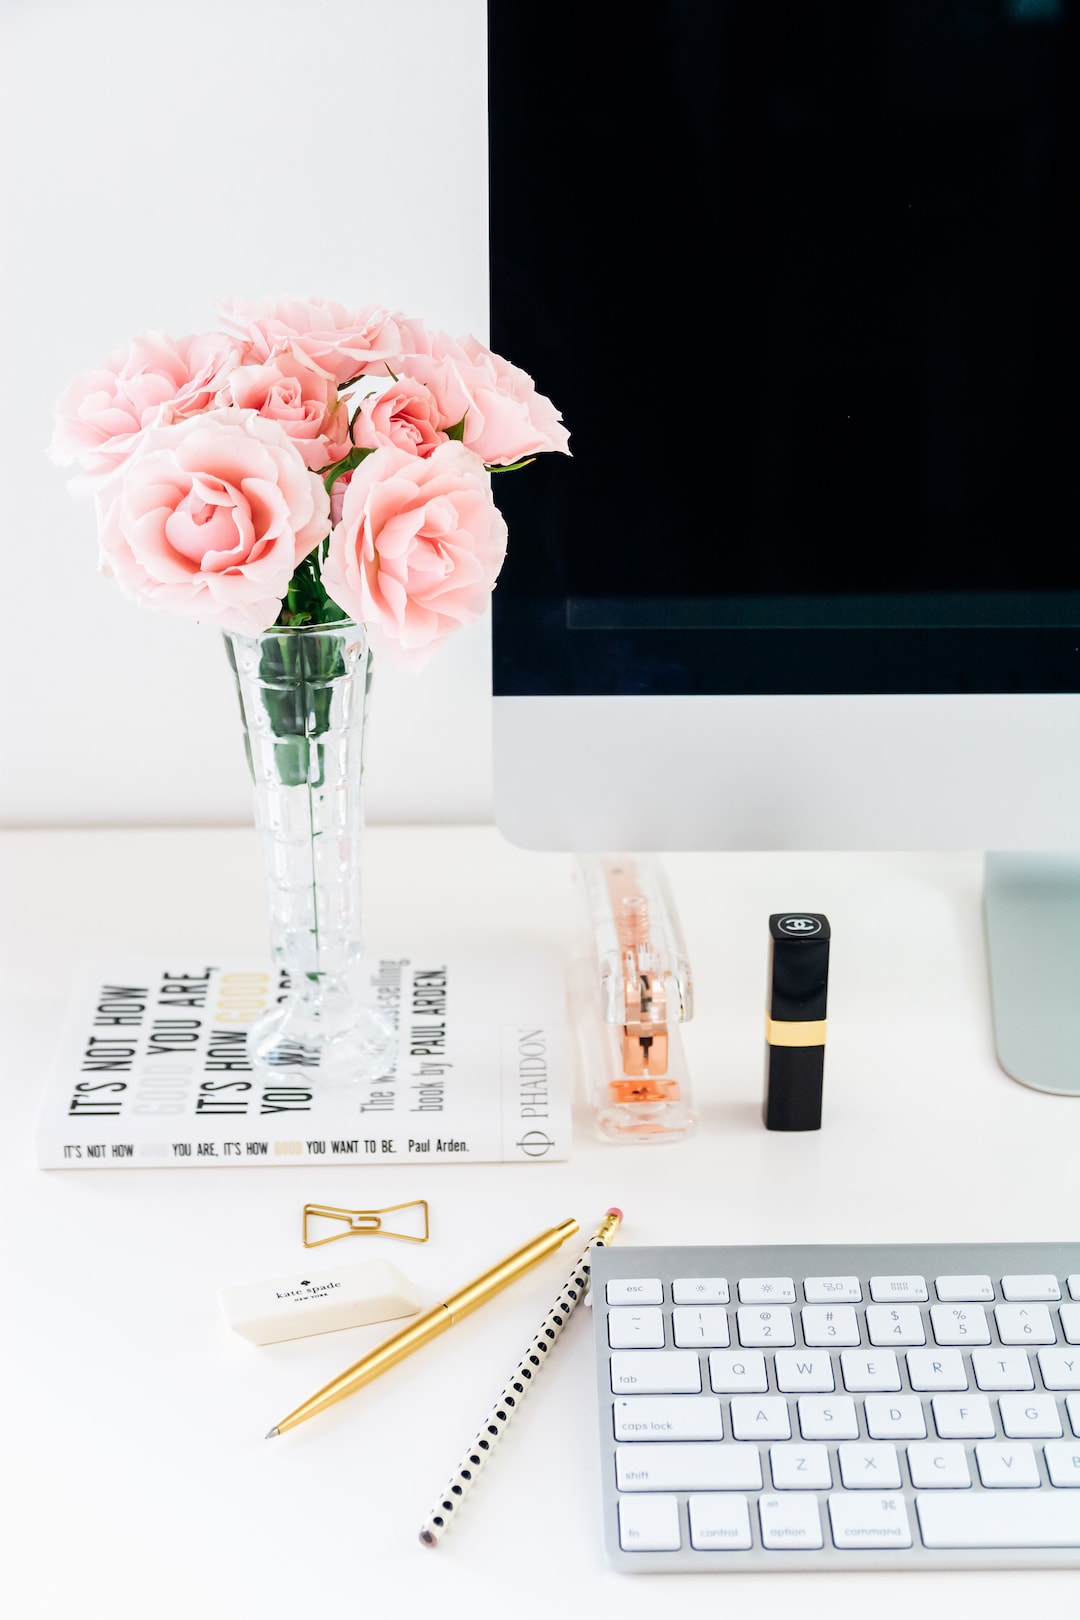 Why You Need Bloglovin'